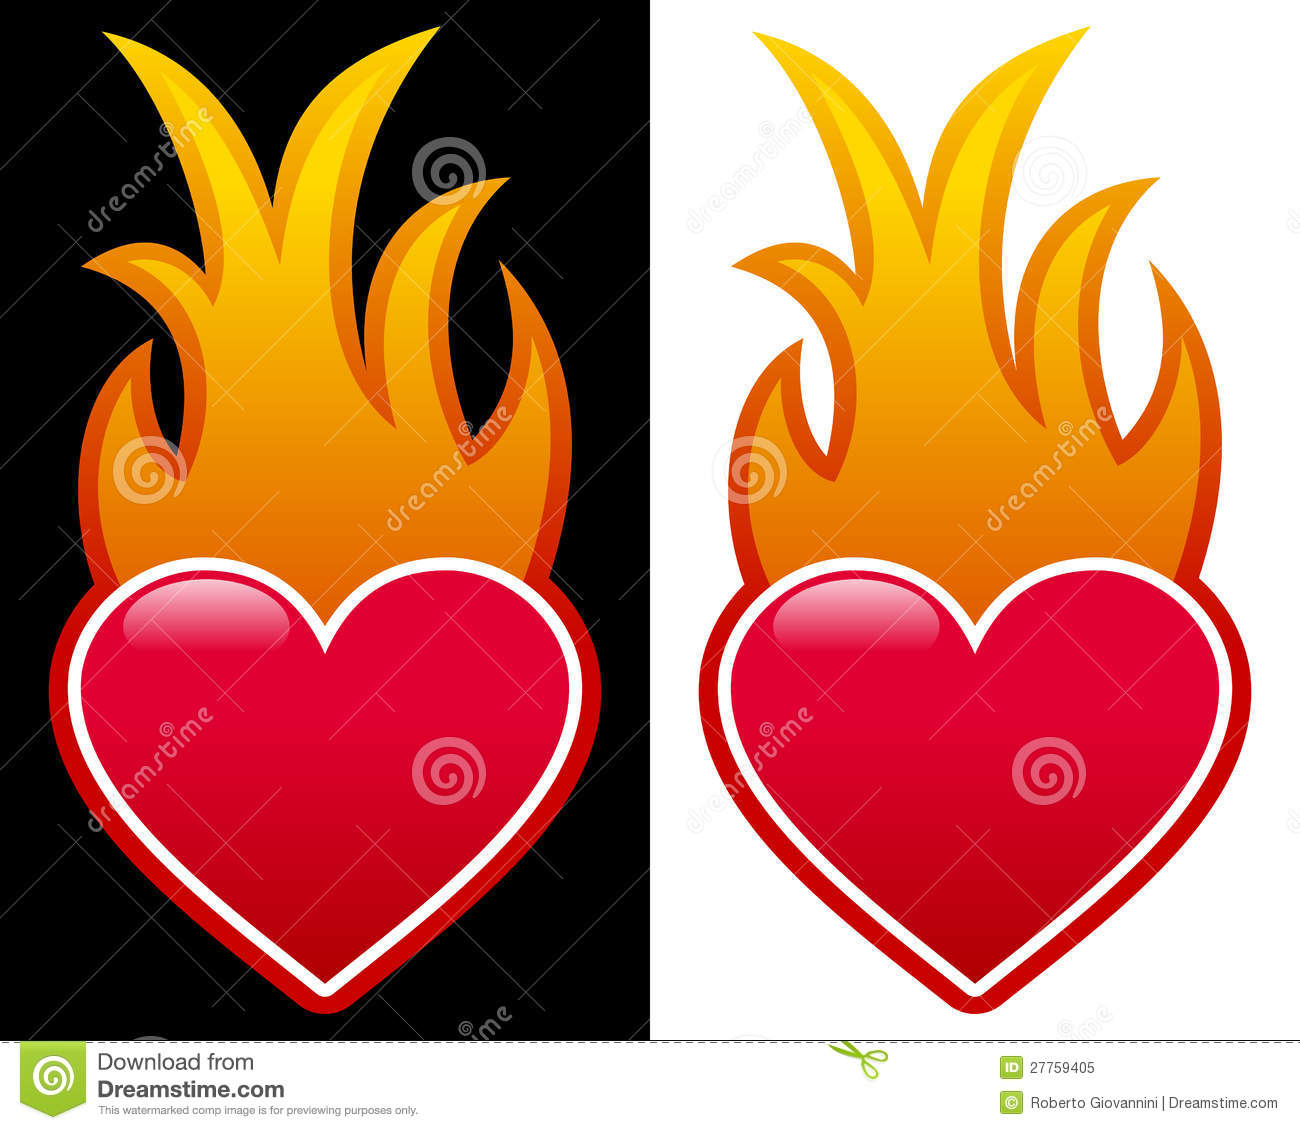 Hearts With Flames Dra...